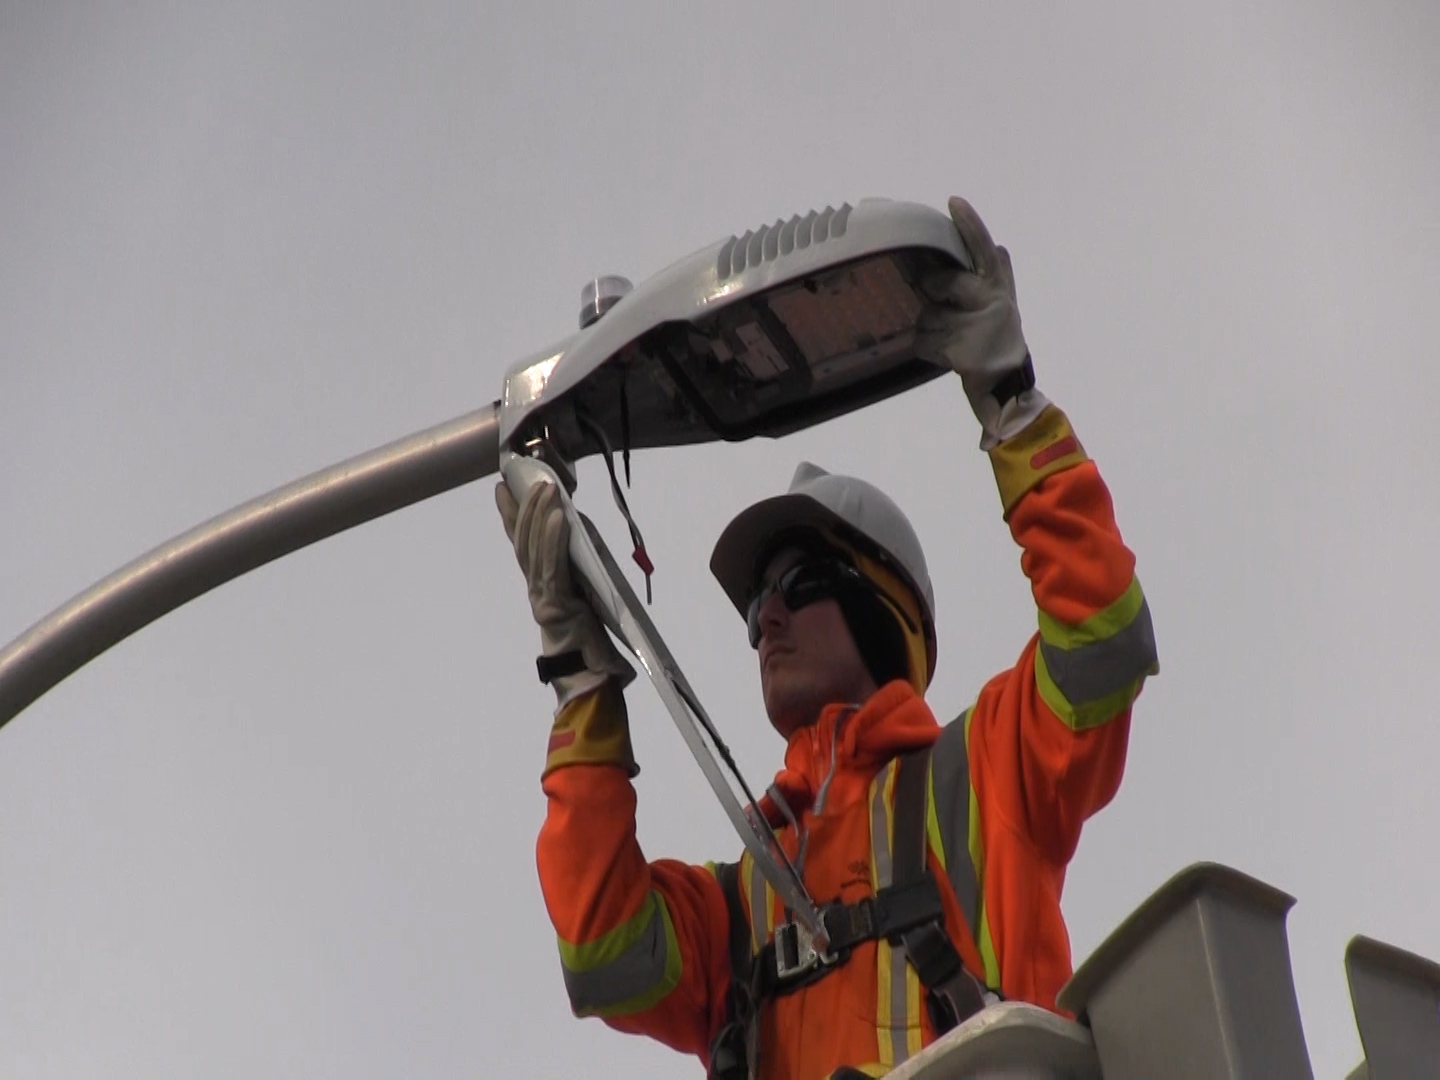 Chris Carr with Enersource Power Services installs an LED street light outside of St. Rose Catholic Elementary School in Windsor on December 9, 2015. (Photo courtesy City of Windsor)